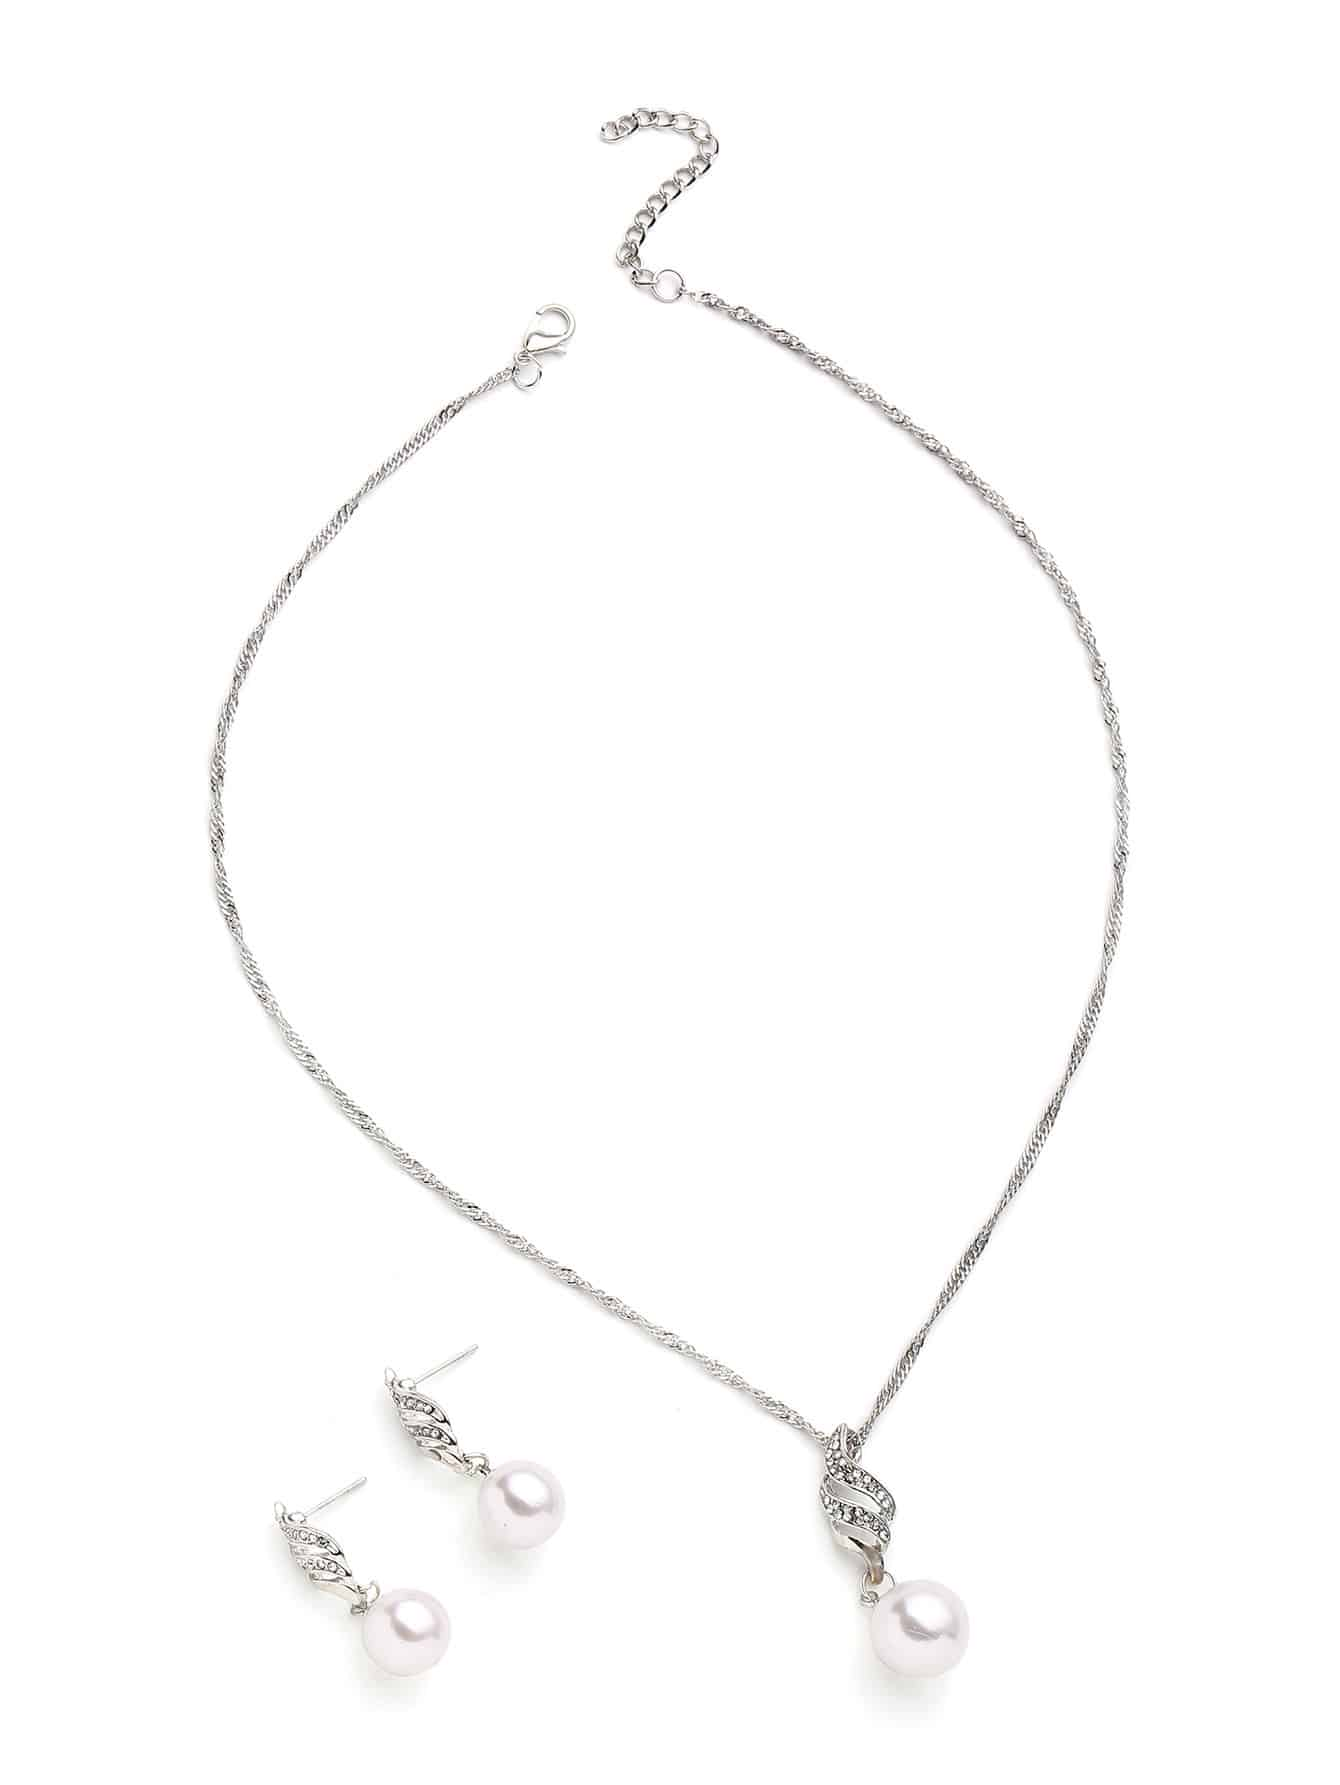 Faux Pearl Pendant Necklace With Drop Earrings resin faux tusk pendant necklace